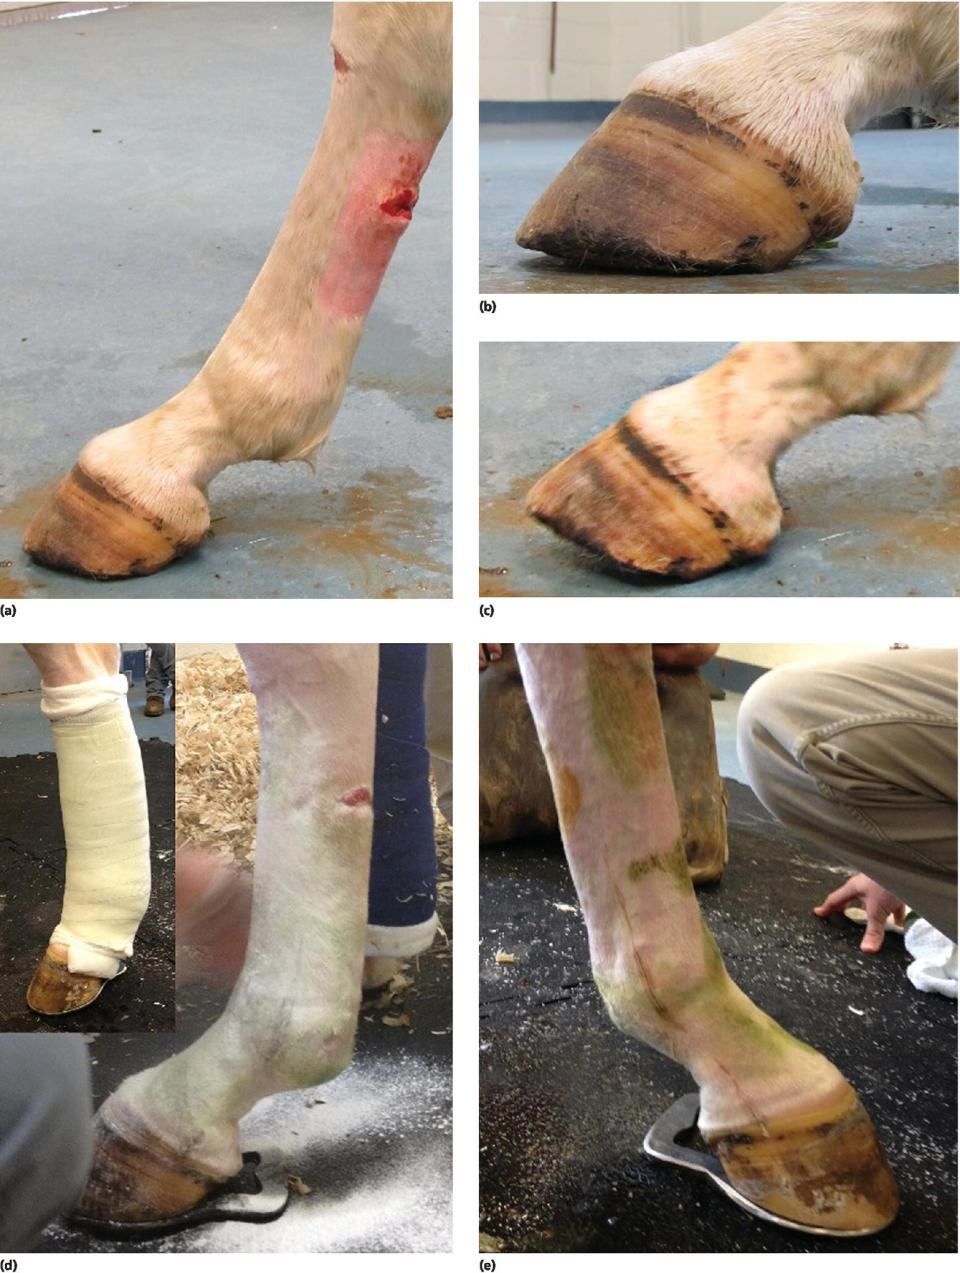 Photos displaying transection of the DDFT in the metatarsal region displaying toe elevation but no fetlock hyperextension (a–c). Photos displaying horse limbs with fishtail shoe applied, with inset (d–e).